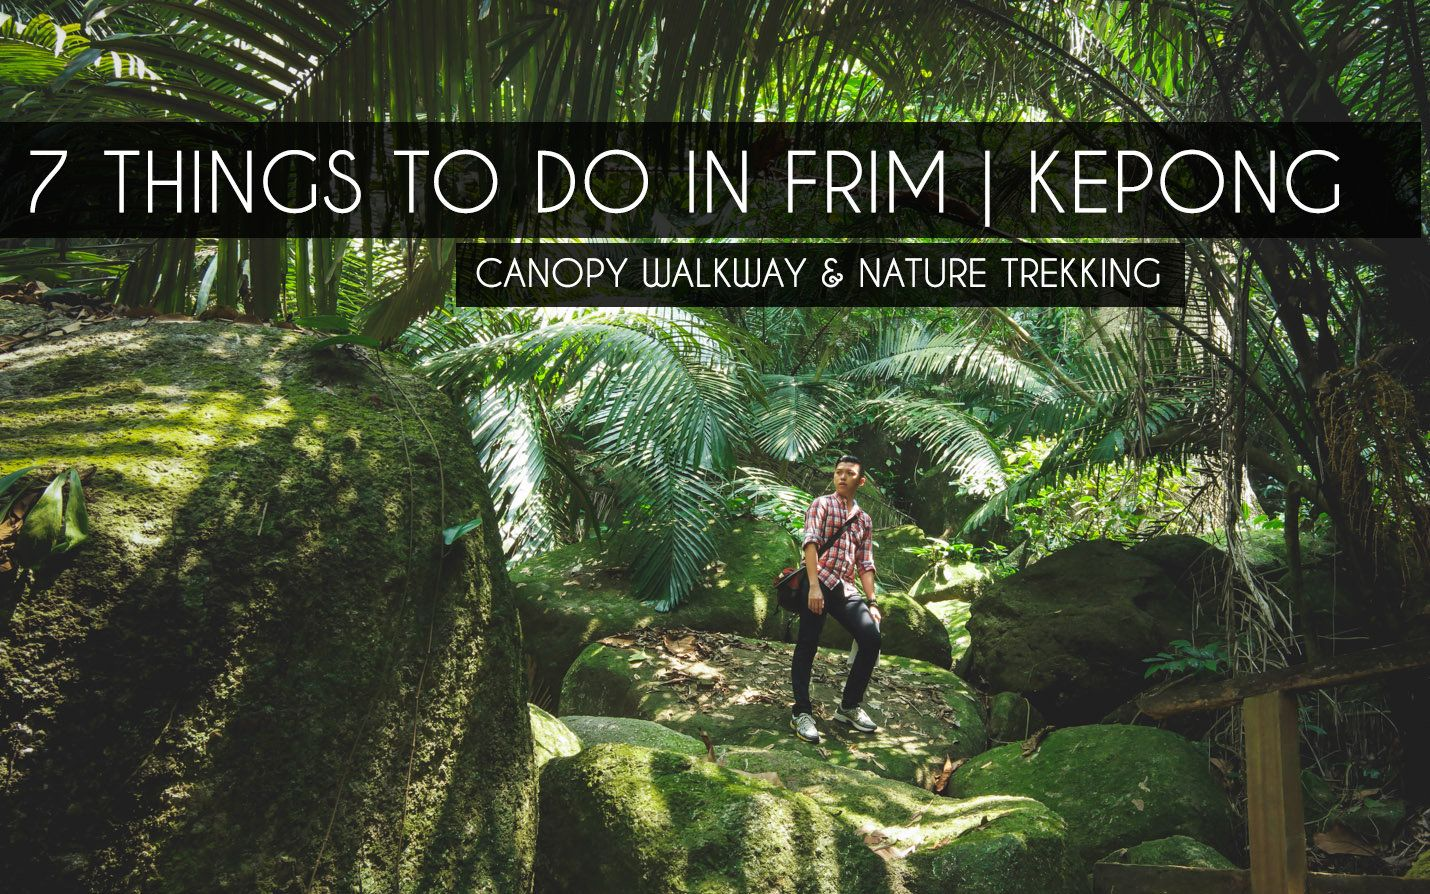 7 Things To Do In Frim Kepong Kuala Lumpur Frim Frimkepong Frimmalaysia Travel Adventure Things To Do Nature Stuff To Do